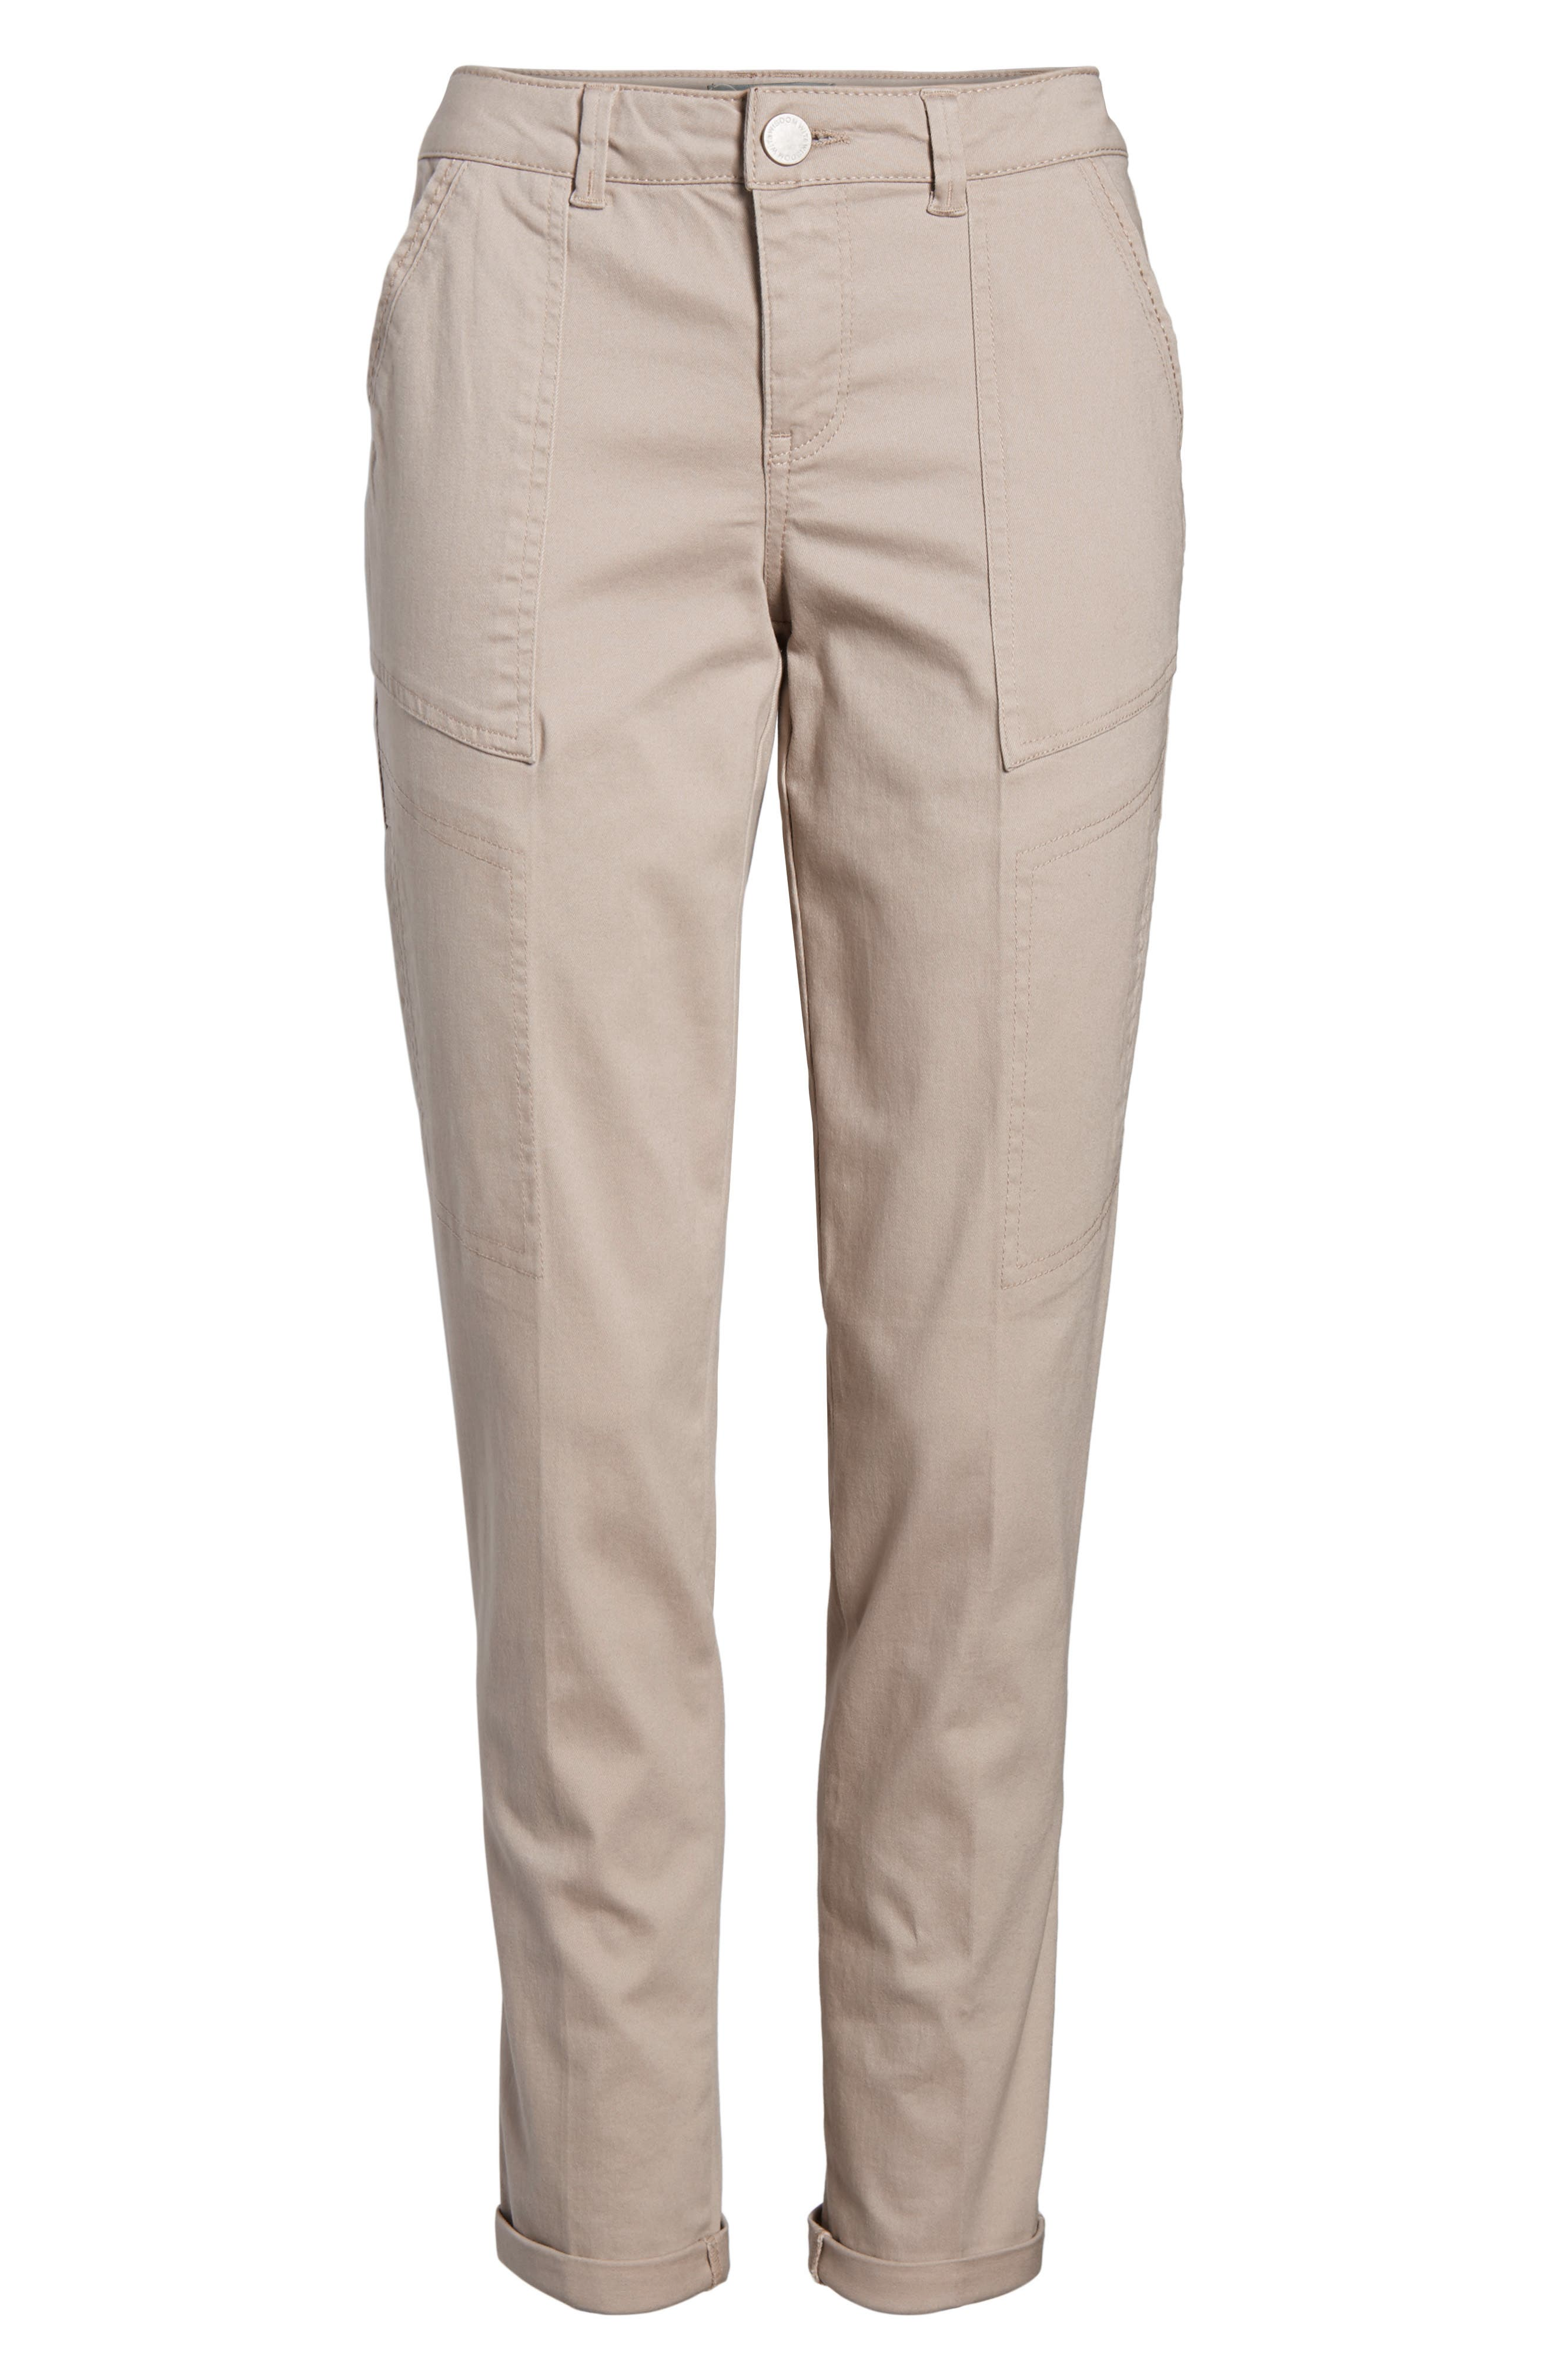 Twill Cargo Pants,                             Main thumbnail 1, color,                             Flax